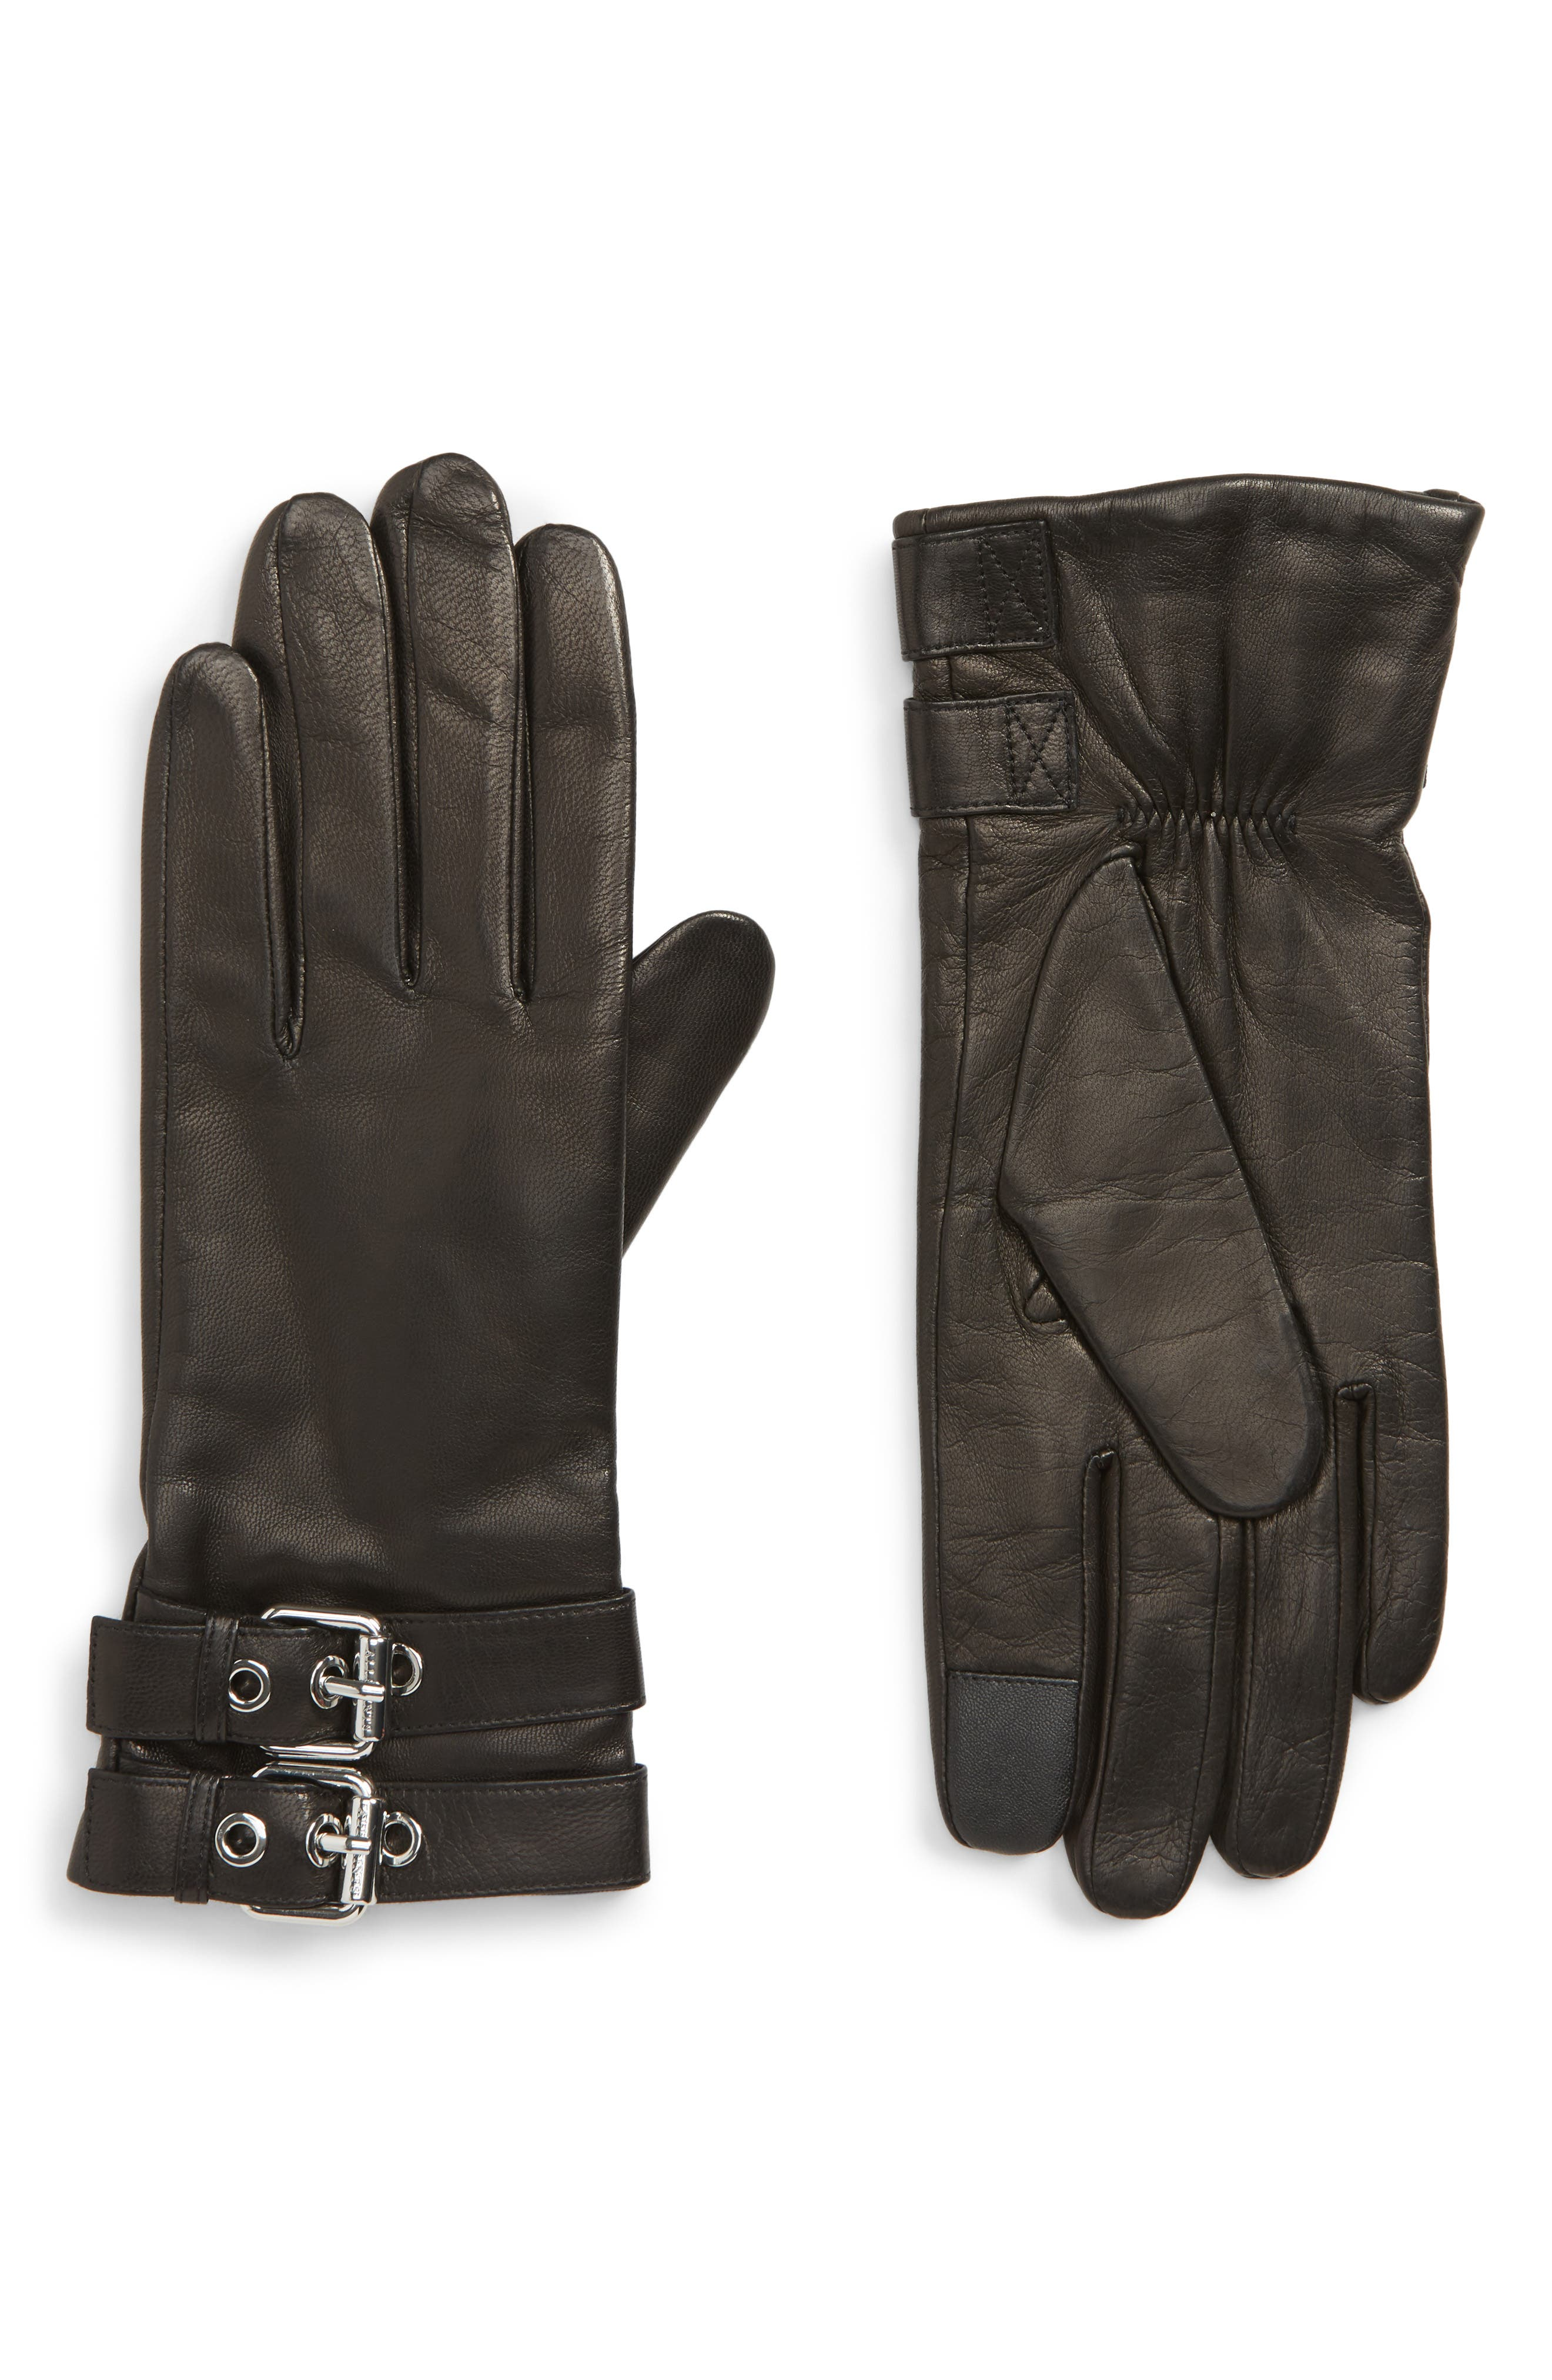 Buckled Leather Gloves,                             Main thumbnail 1, color,                             BLACK/ SHINY NICKEL